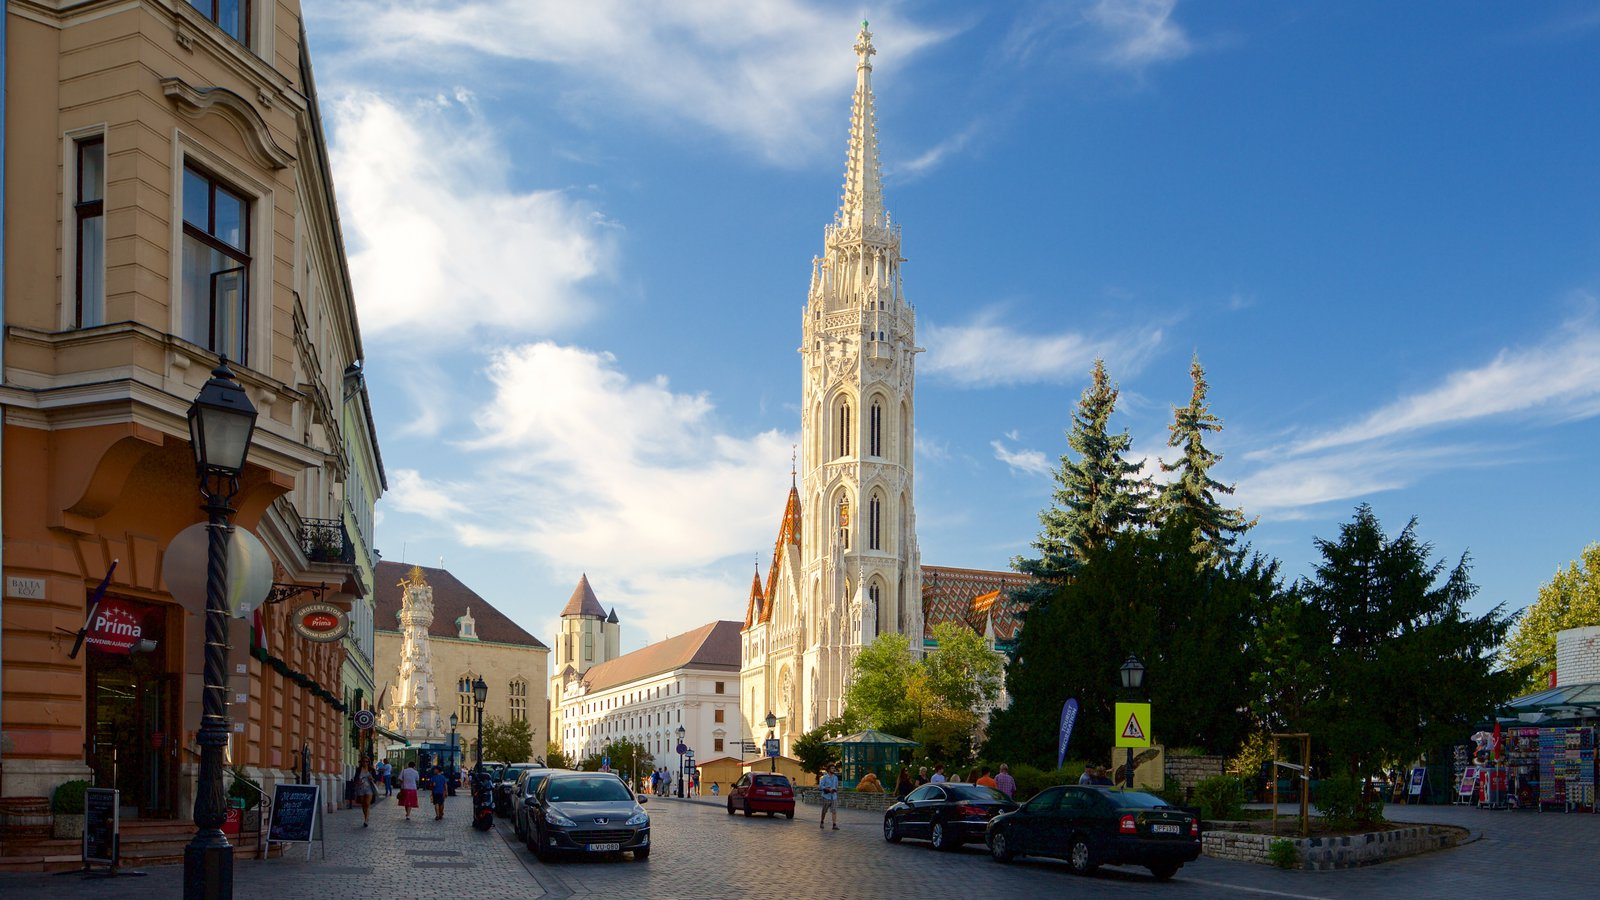 Matthias Church showing heritage architecture, street scenes and a city